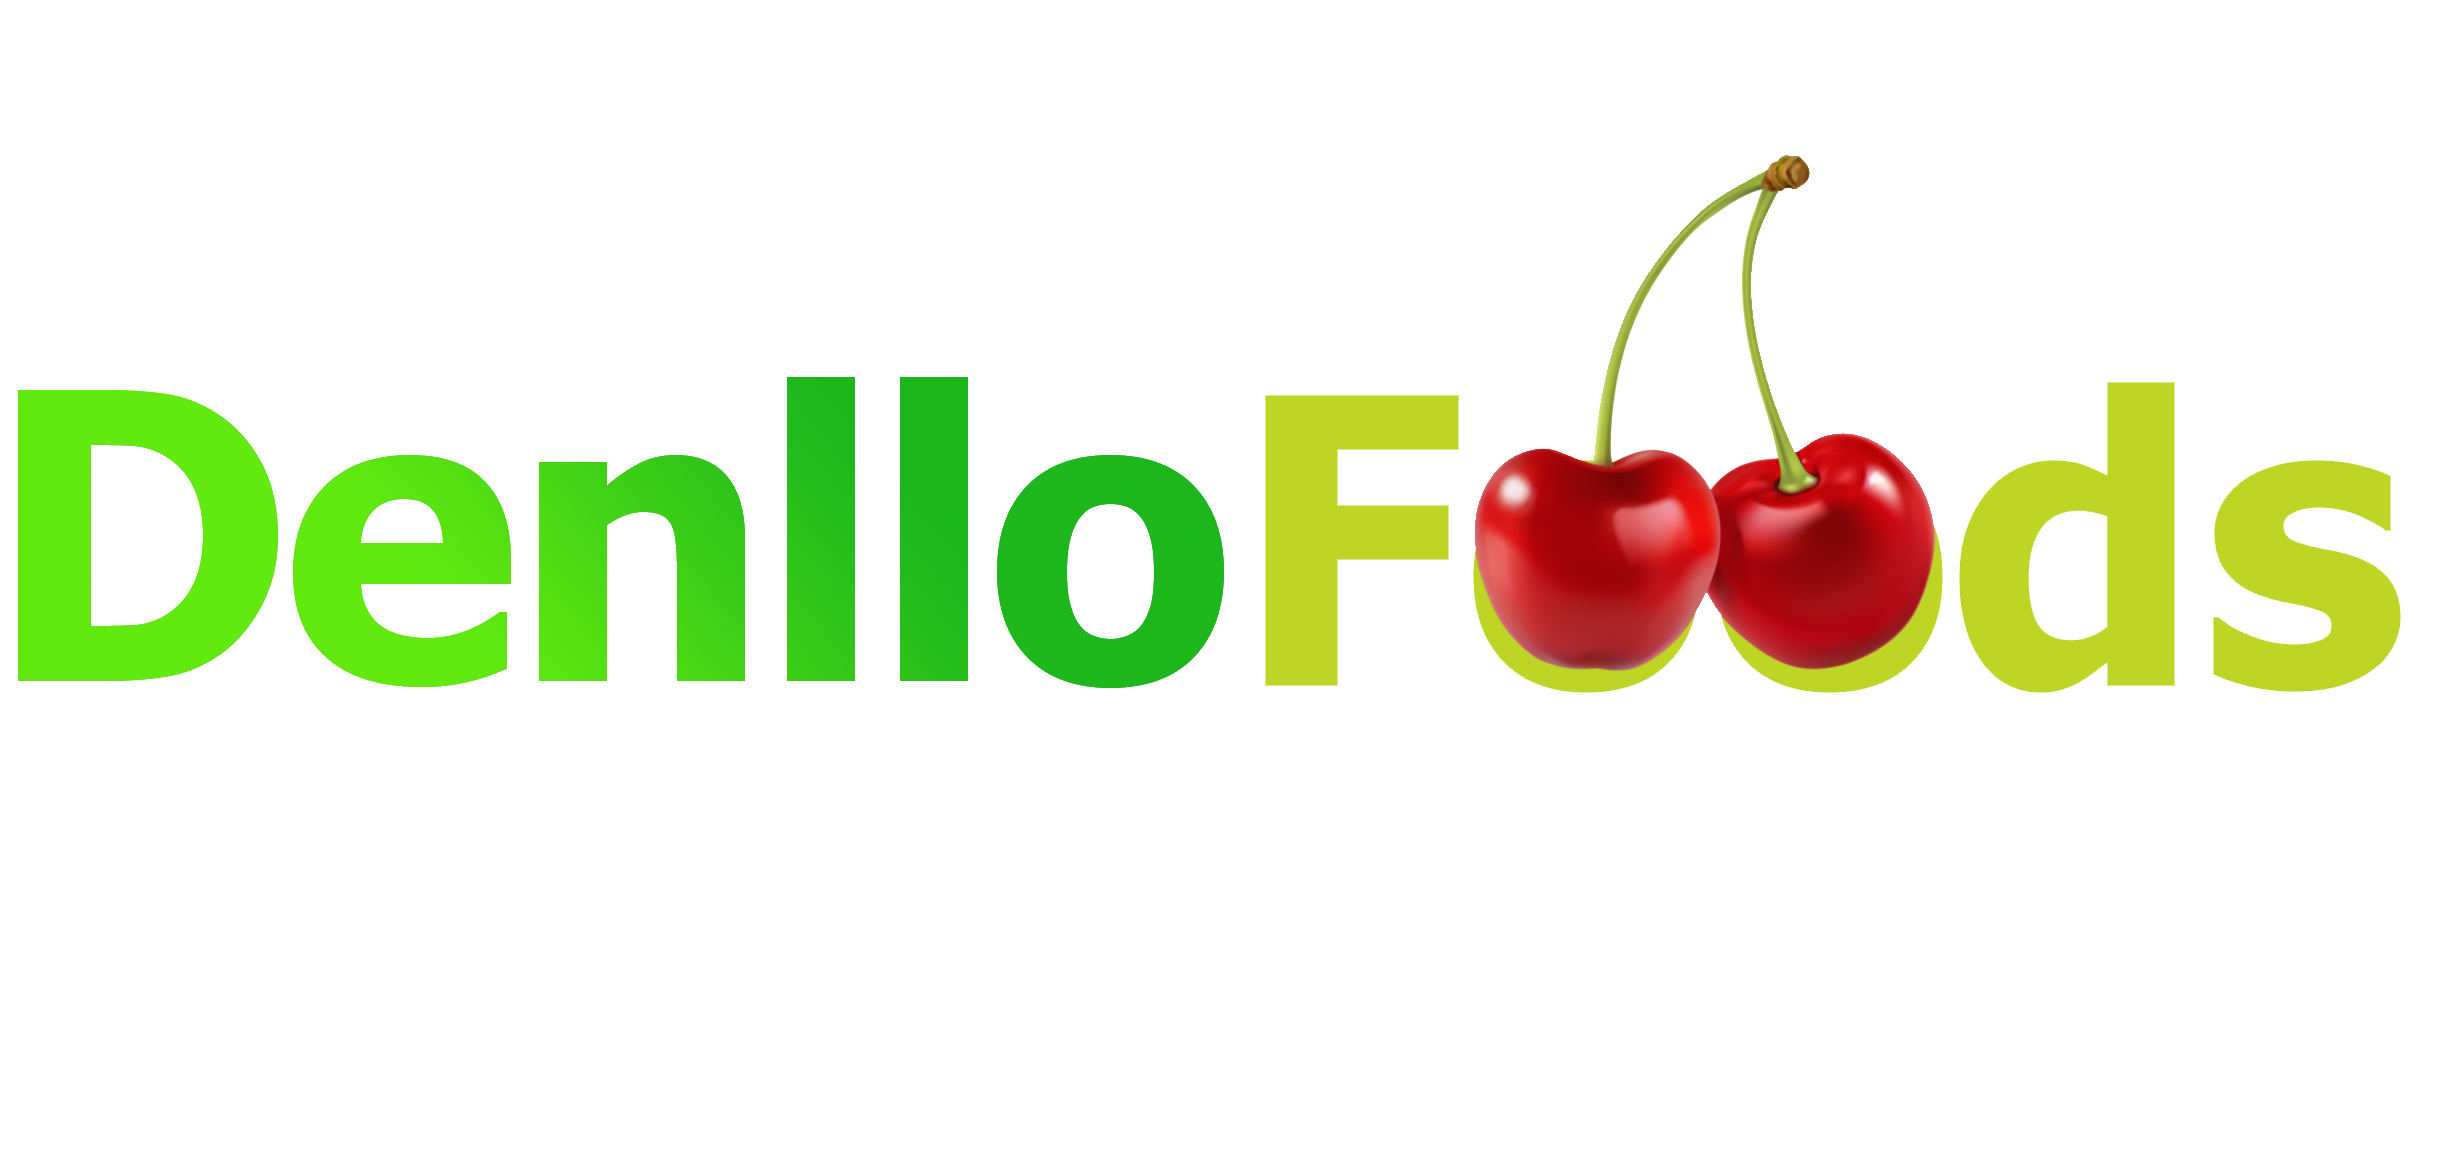 Denllo Food Bank - Nigeria's Online Agro Store   Poultry   Sea Foods   Live Stock